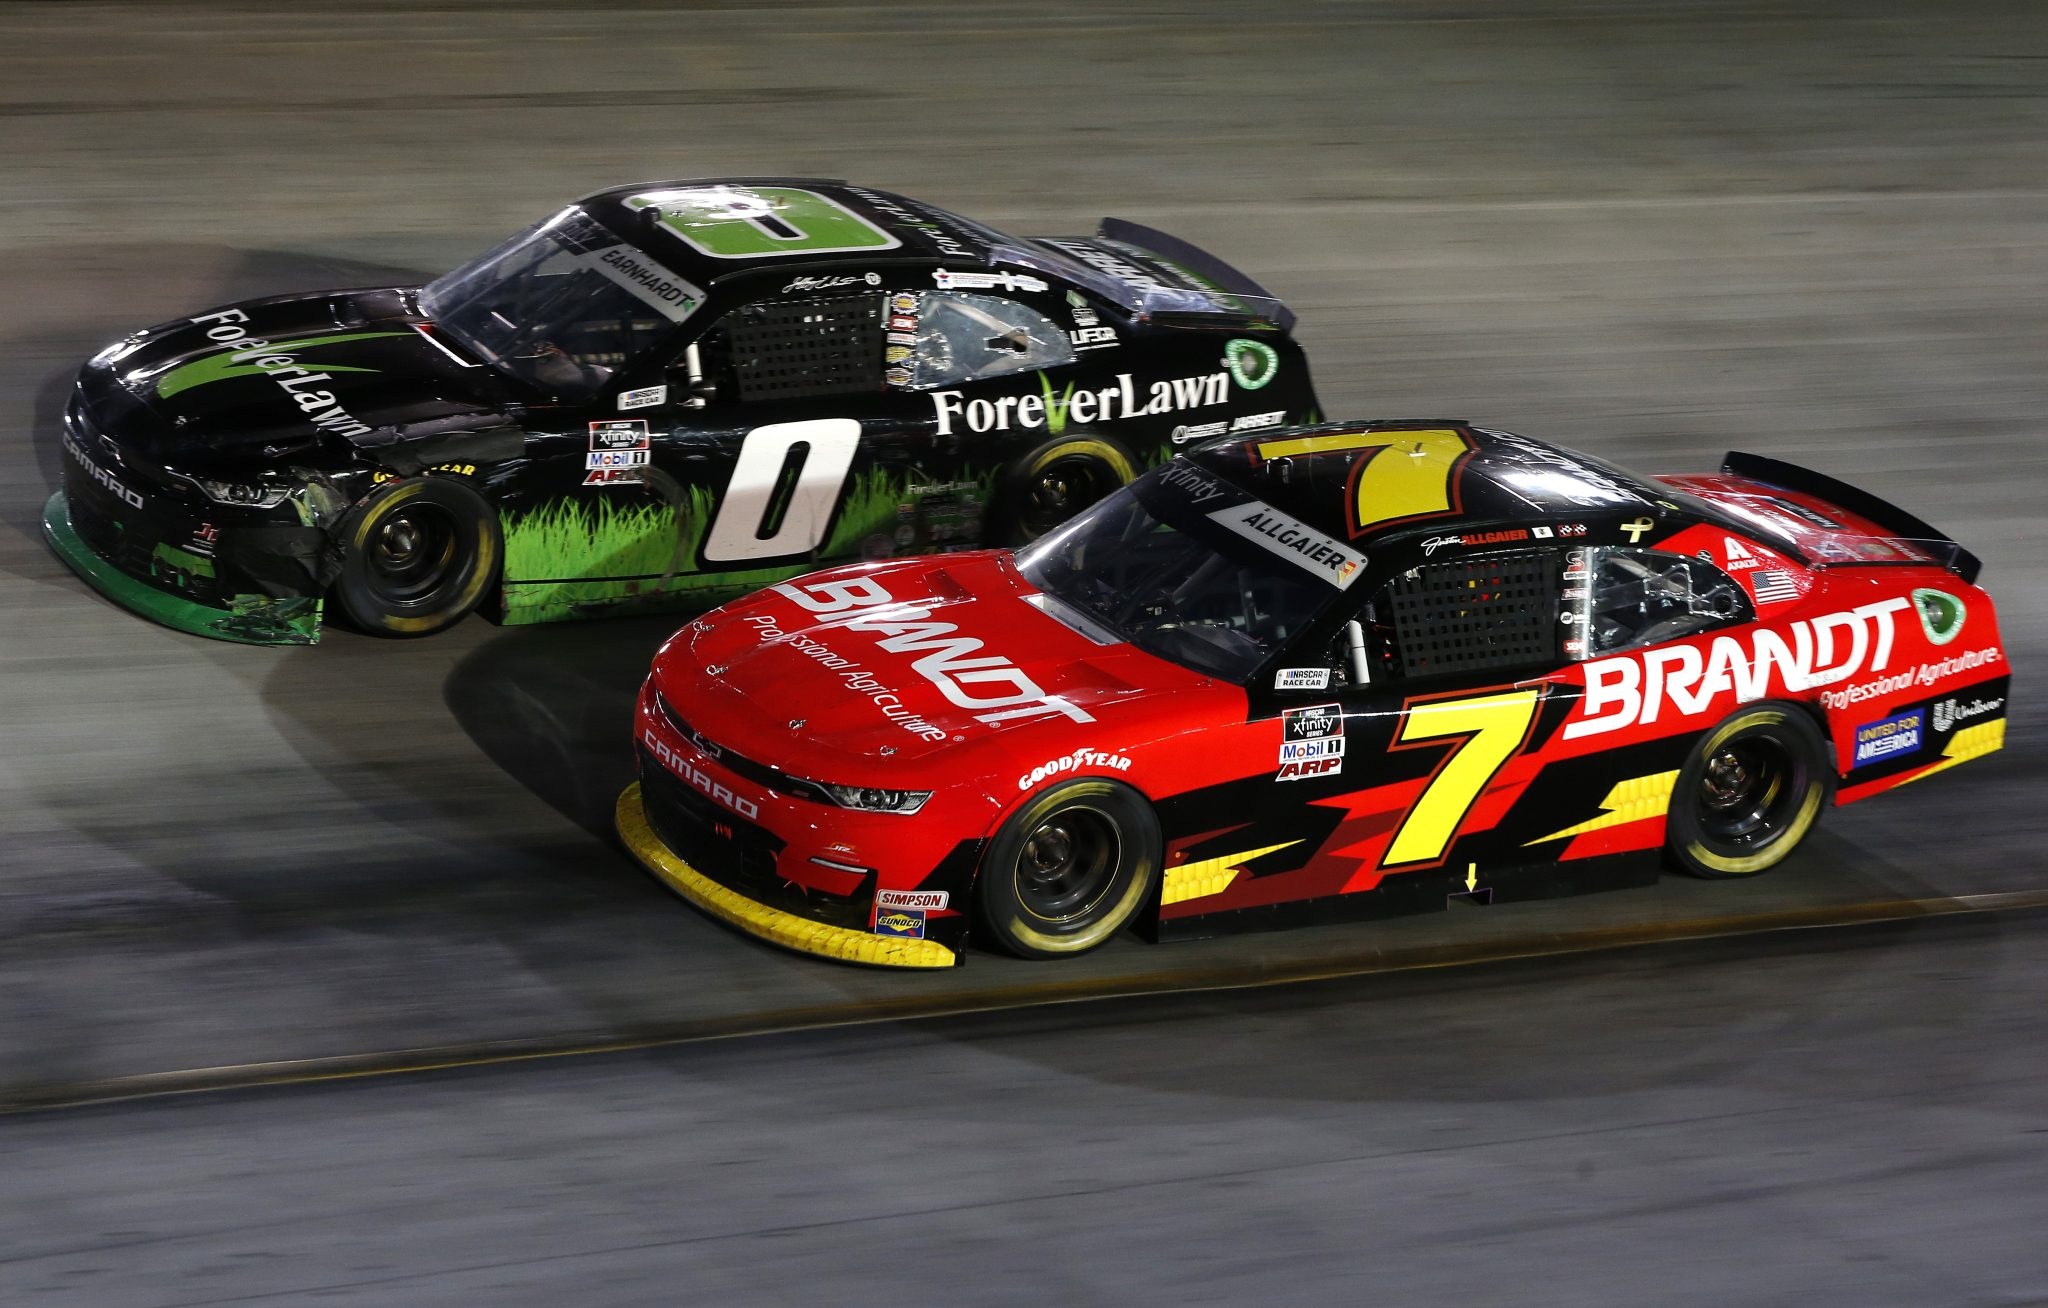 BRISTOL, TENNESSEE - SEPTEMBER 17: Jeffrey Earnhardt, driver of the #0 ForeverLawn Chevrolet, and Justin Allgaier, driver of the #7 BRANDT Chevrolet, race during the NASCAR Xfinity Series Food City 300 at Bristol Motor Speedway on September 17, 2021 in Bristol, Tennessee. (Photo by Brian Lawdermilk/Getty Images) | Getty Images